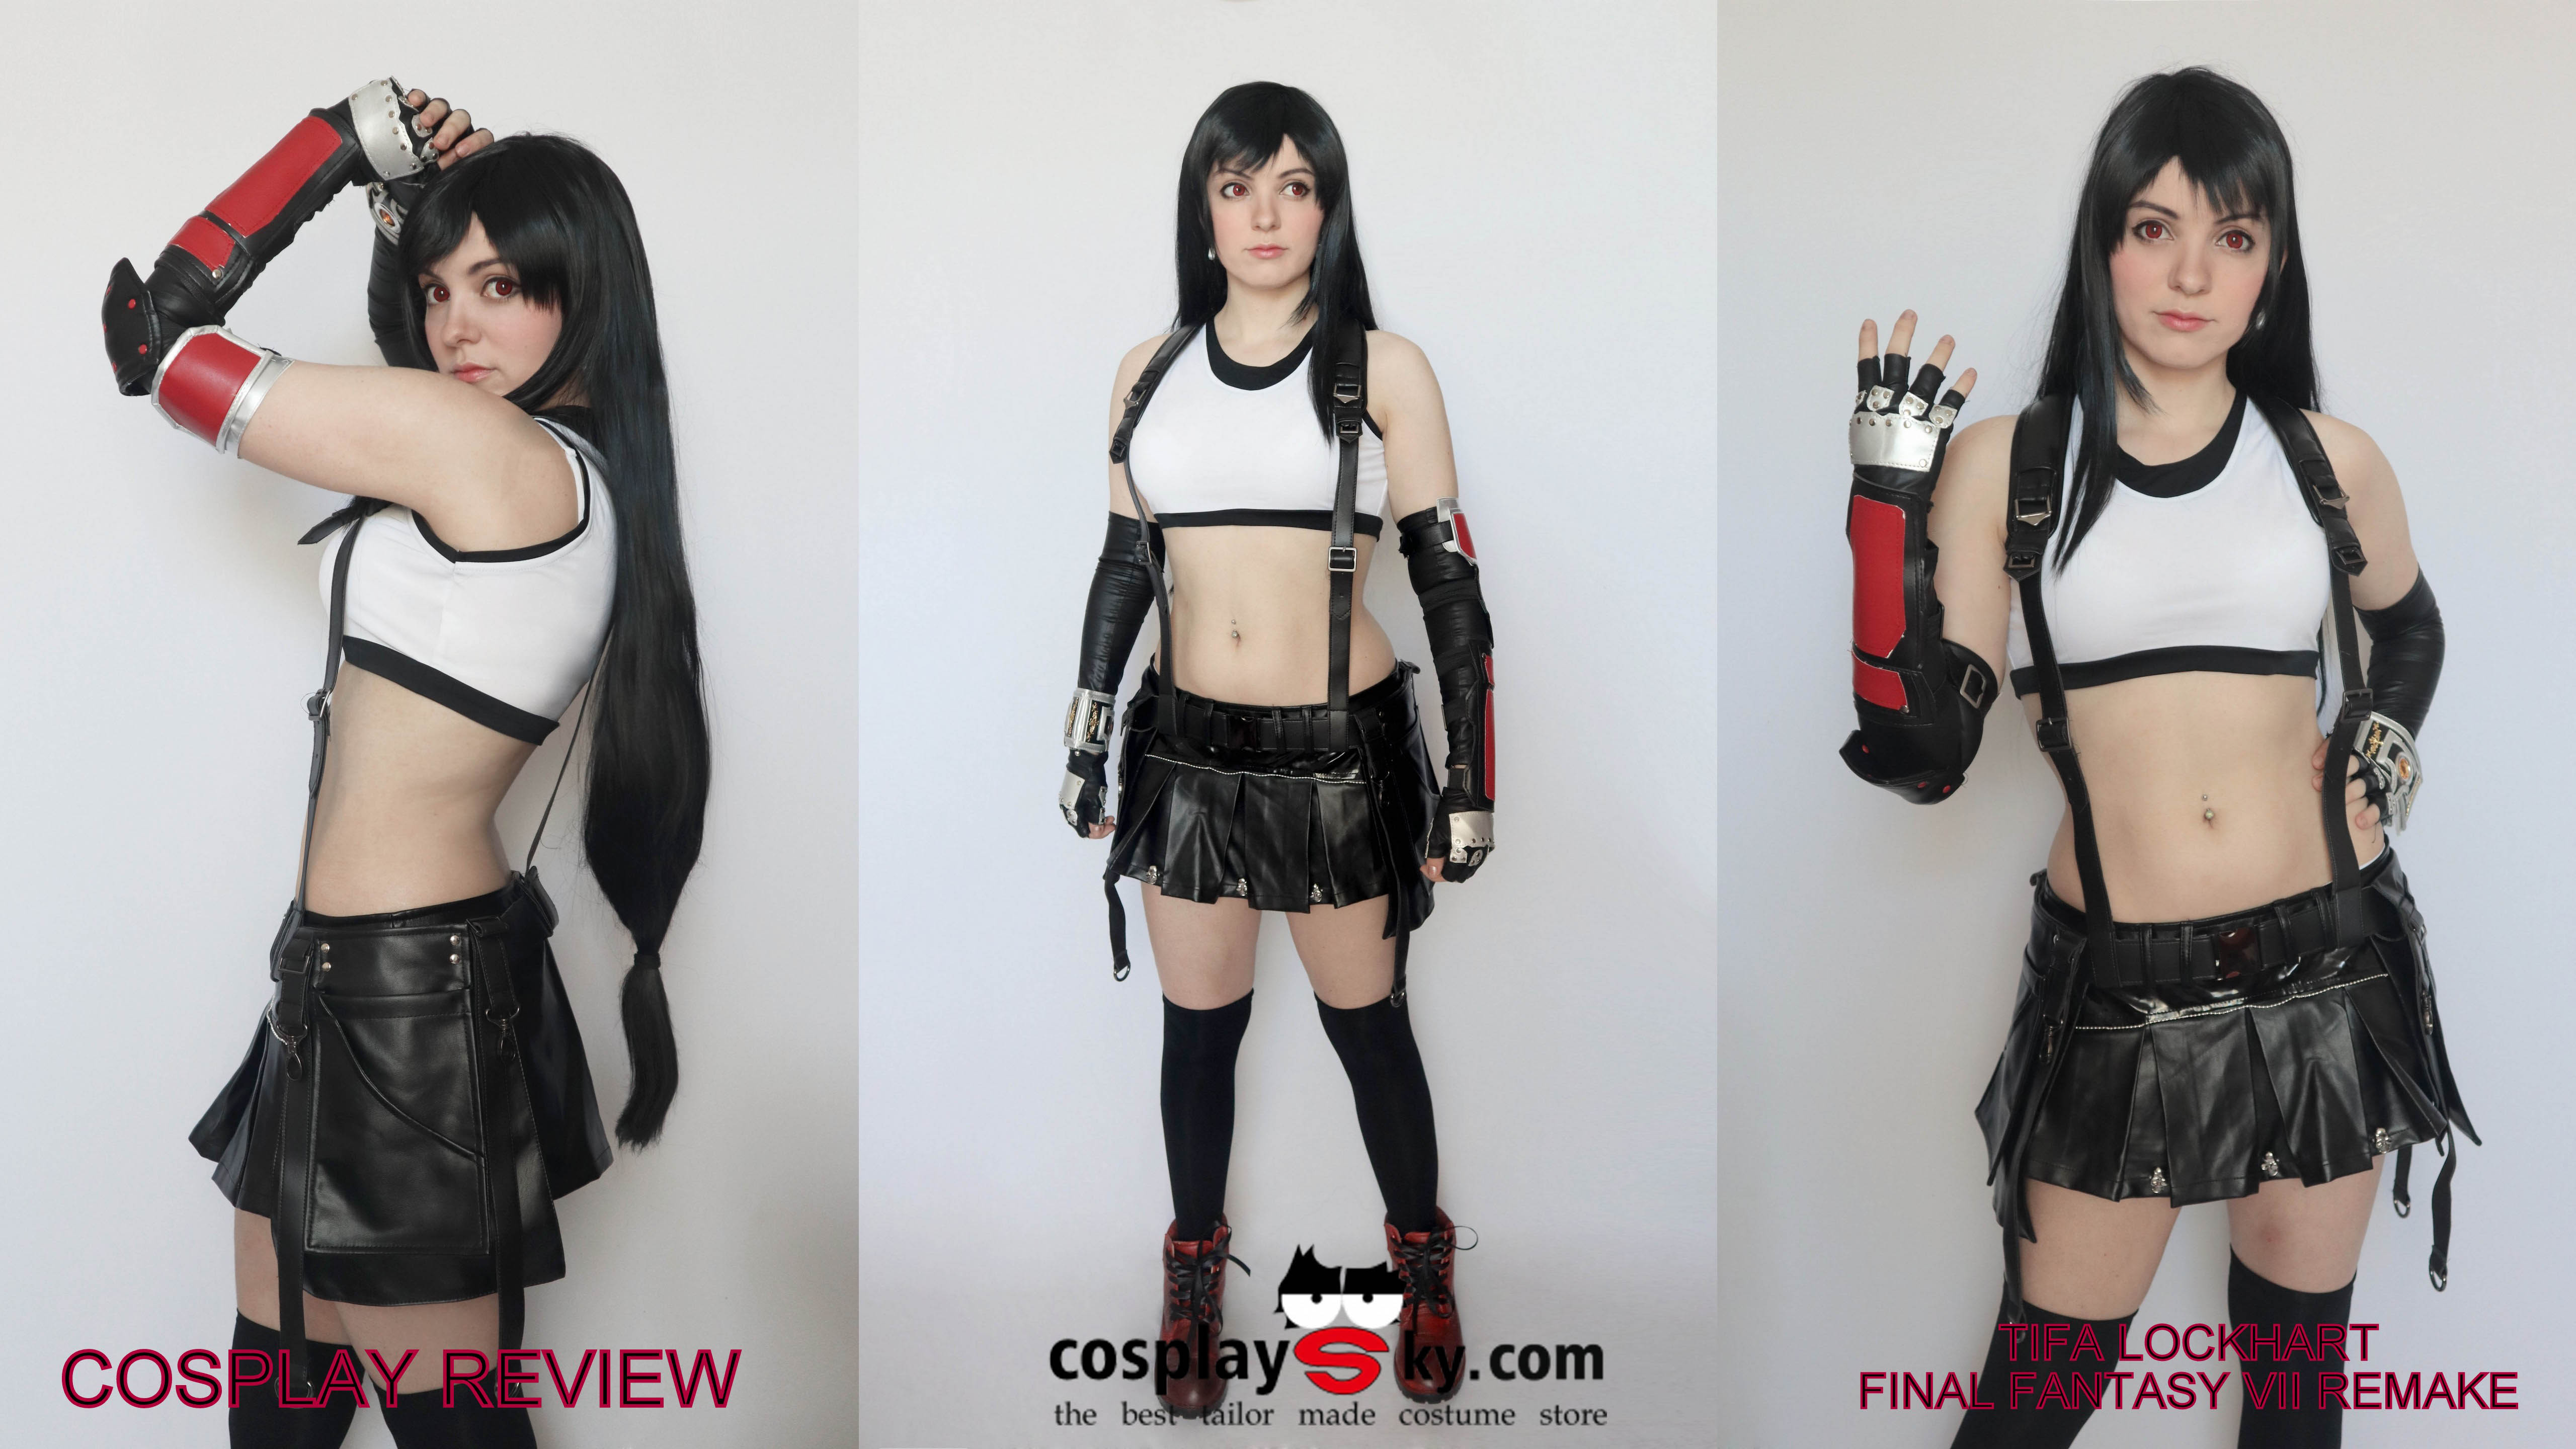 Cosplay Review: Tifa Lockhart from Final Fantasy VII Remake